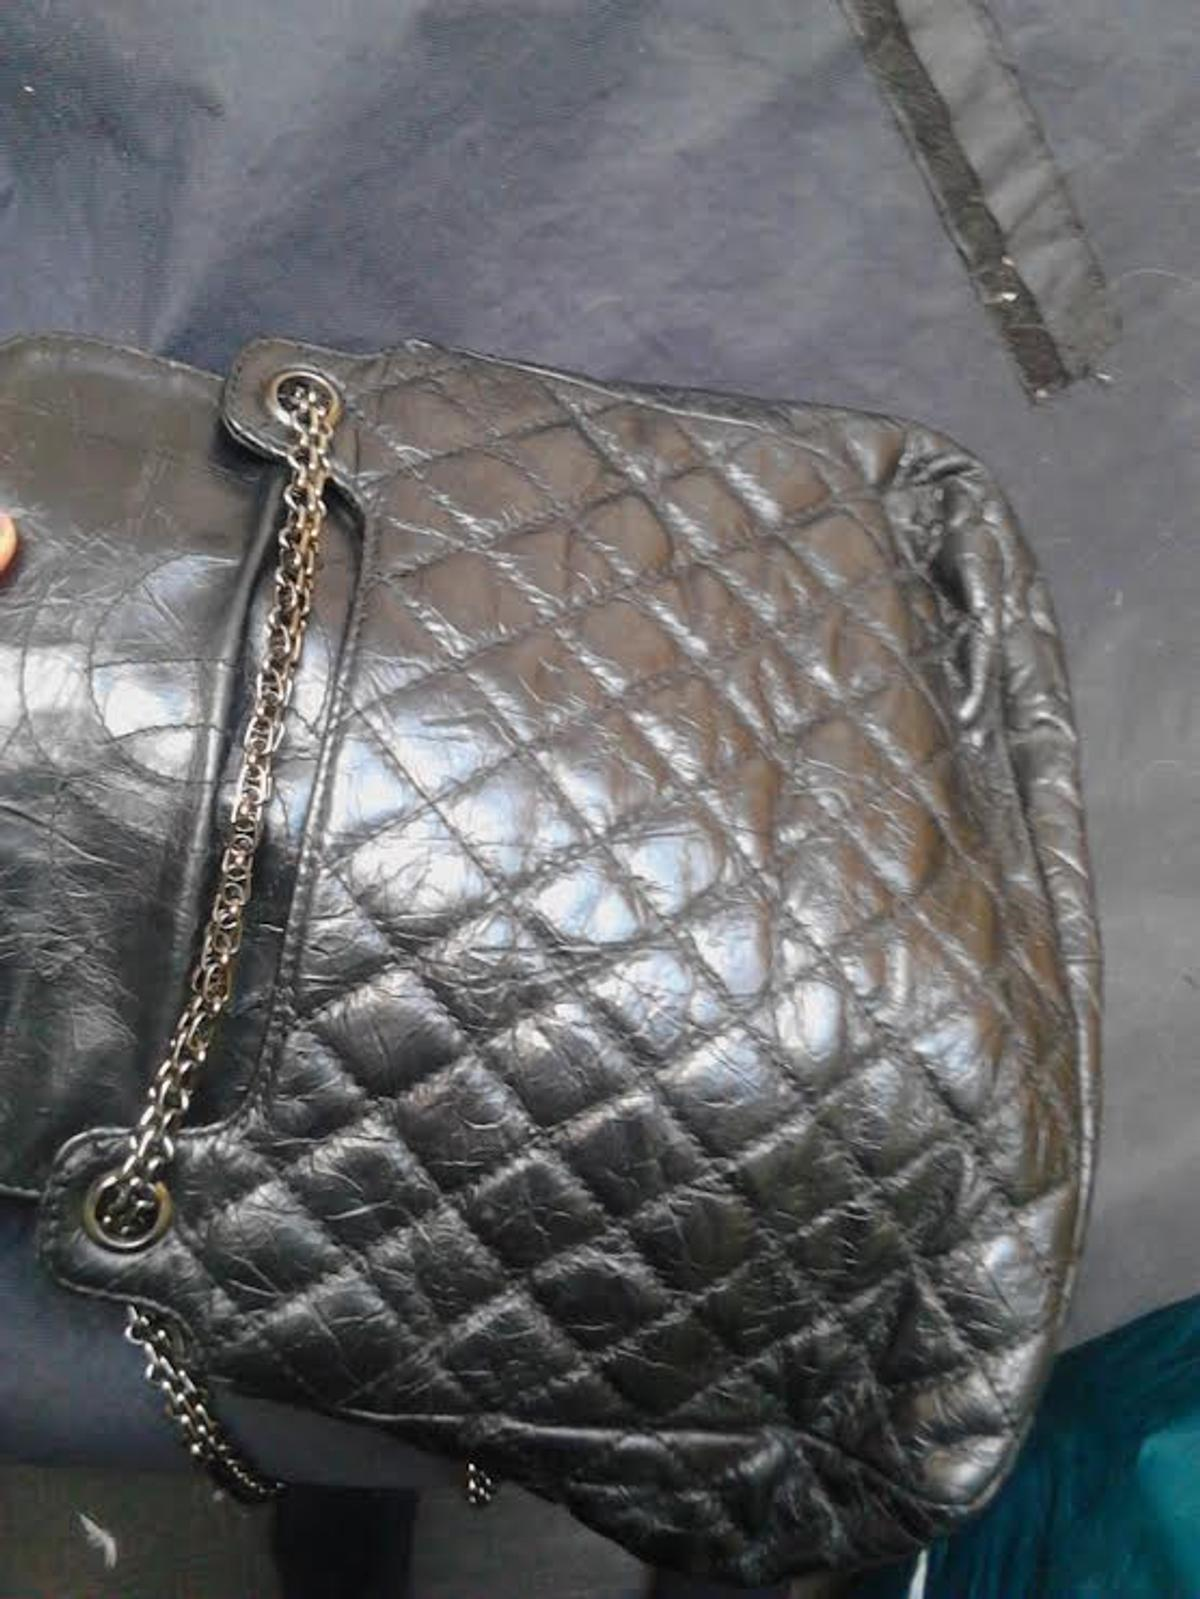 Borse Chanel Vintage Usate.Borsa Chanel In Pelle Vintage In Roma For 170 00 For Sale Shpock